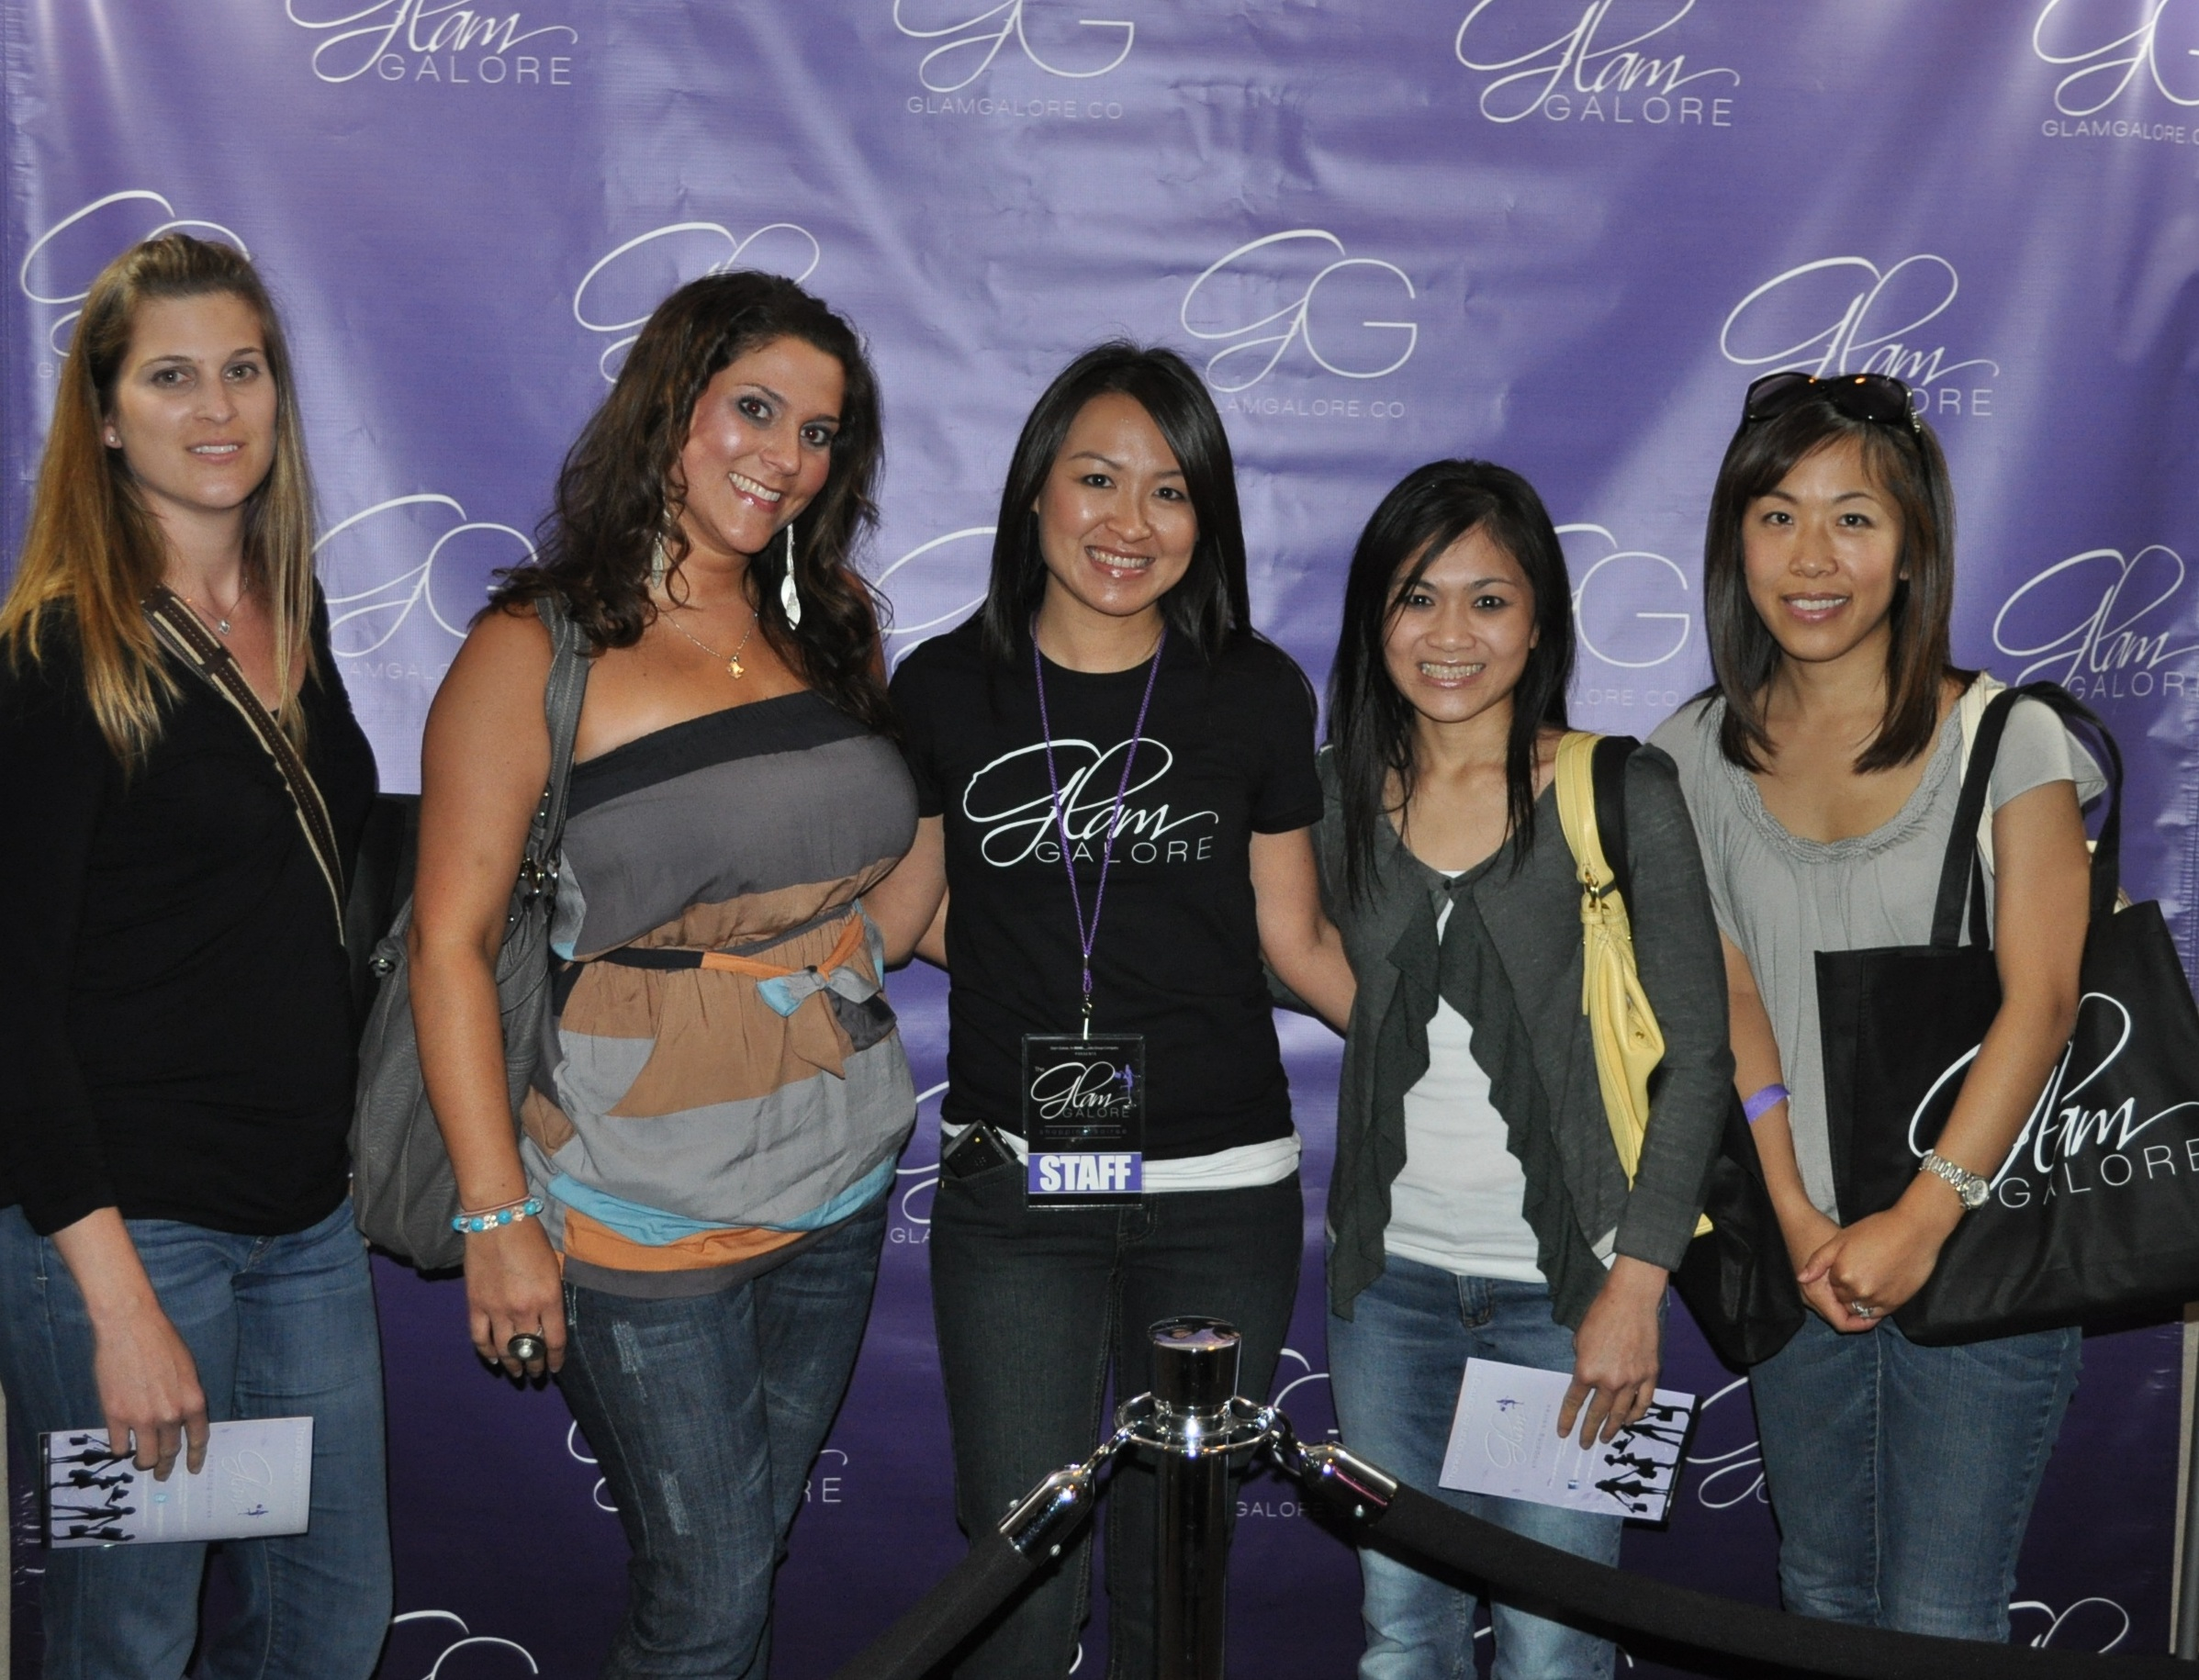 Guests at The Glam Galore Shopping Soiree 2011